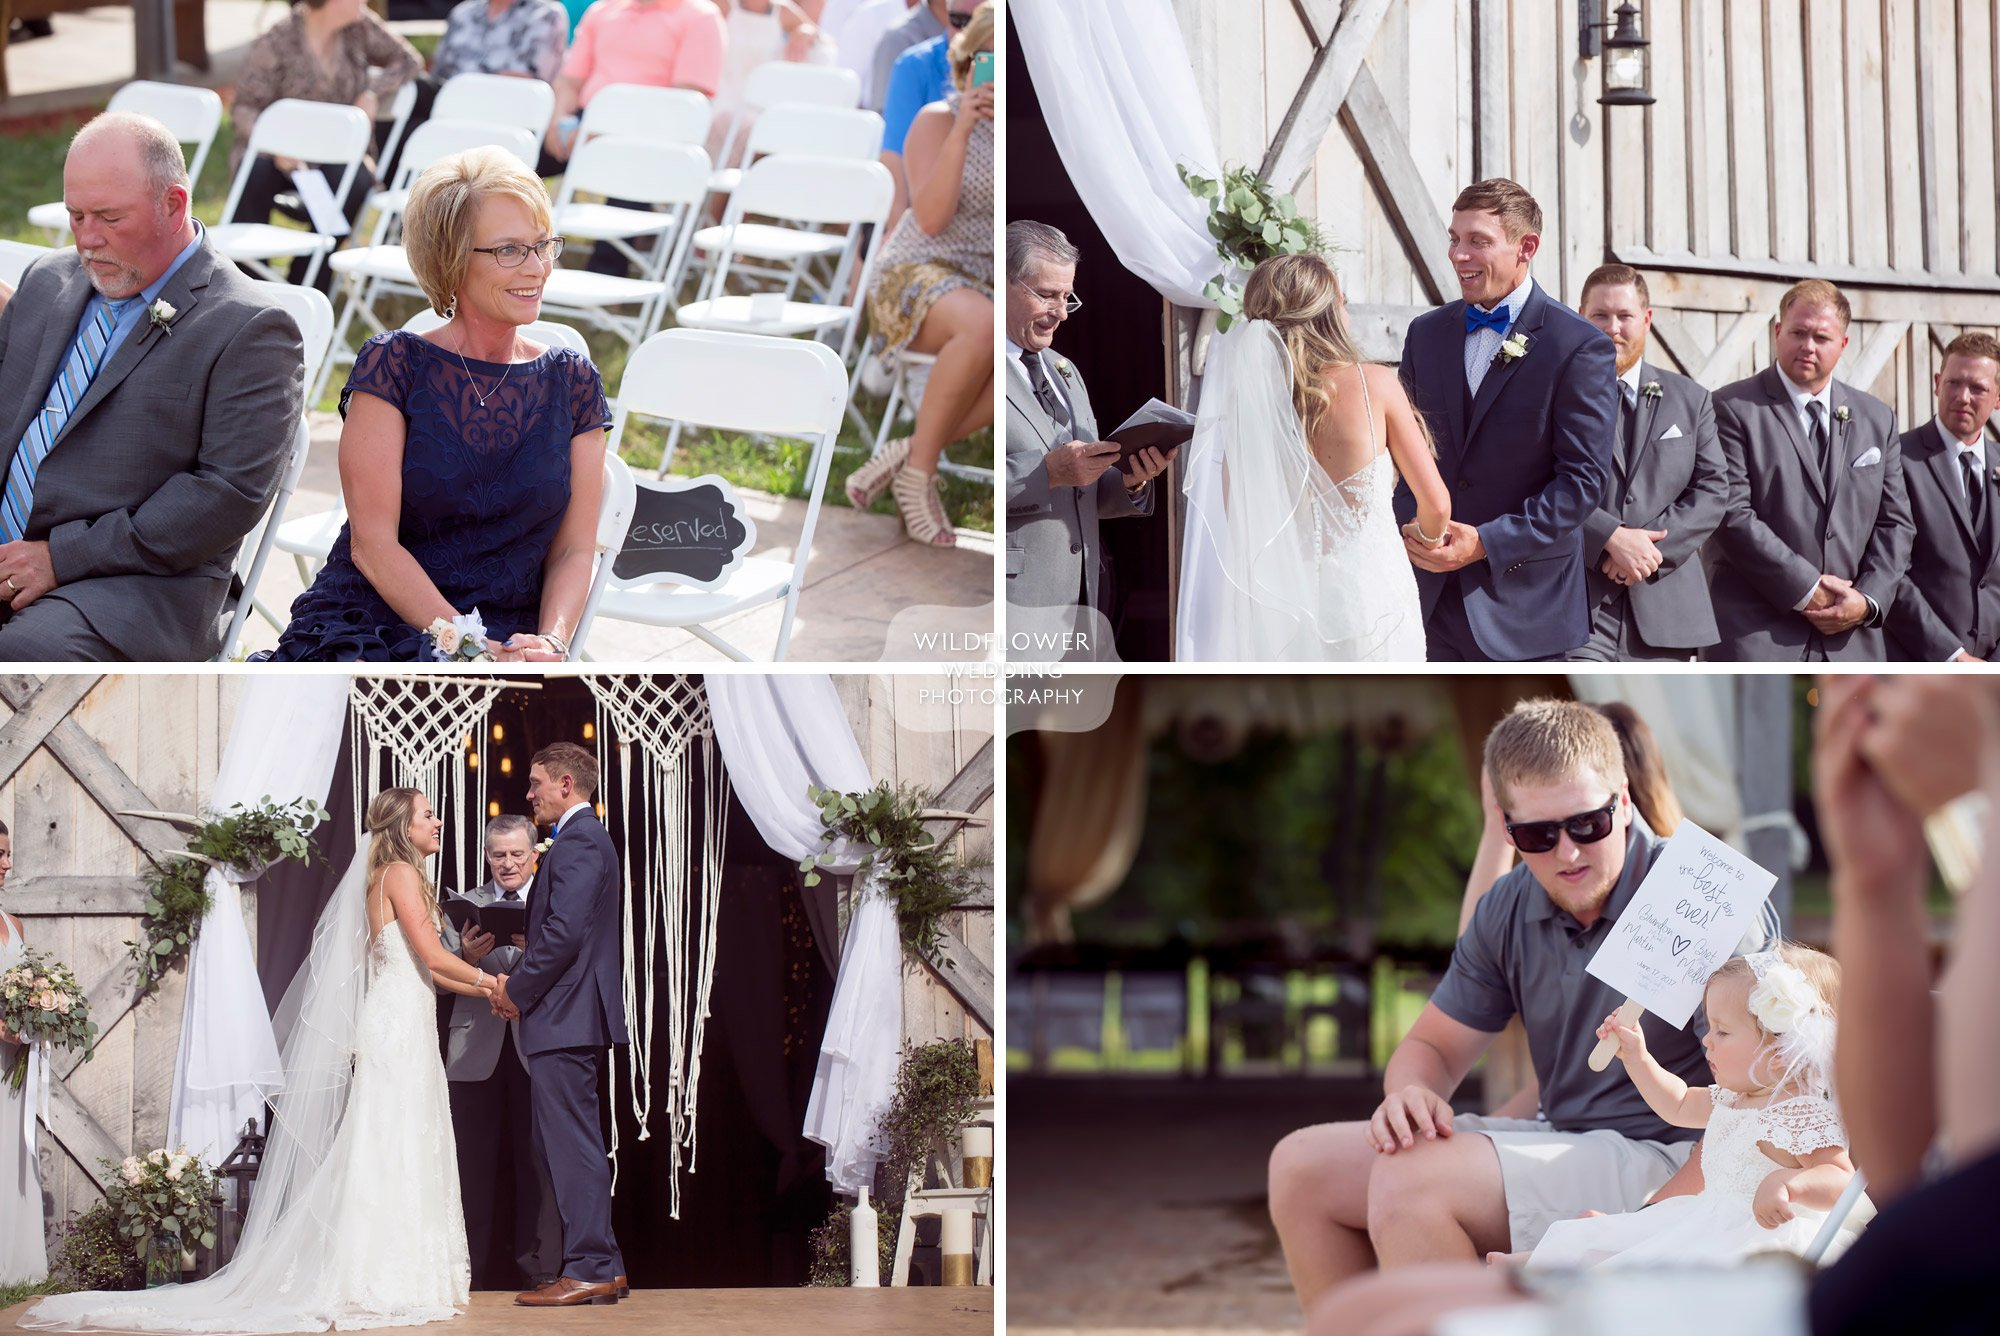 Documentary photos of the wedding ceremony guests watching the bride and groom at this barn wedding venue in MO.